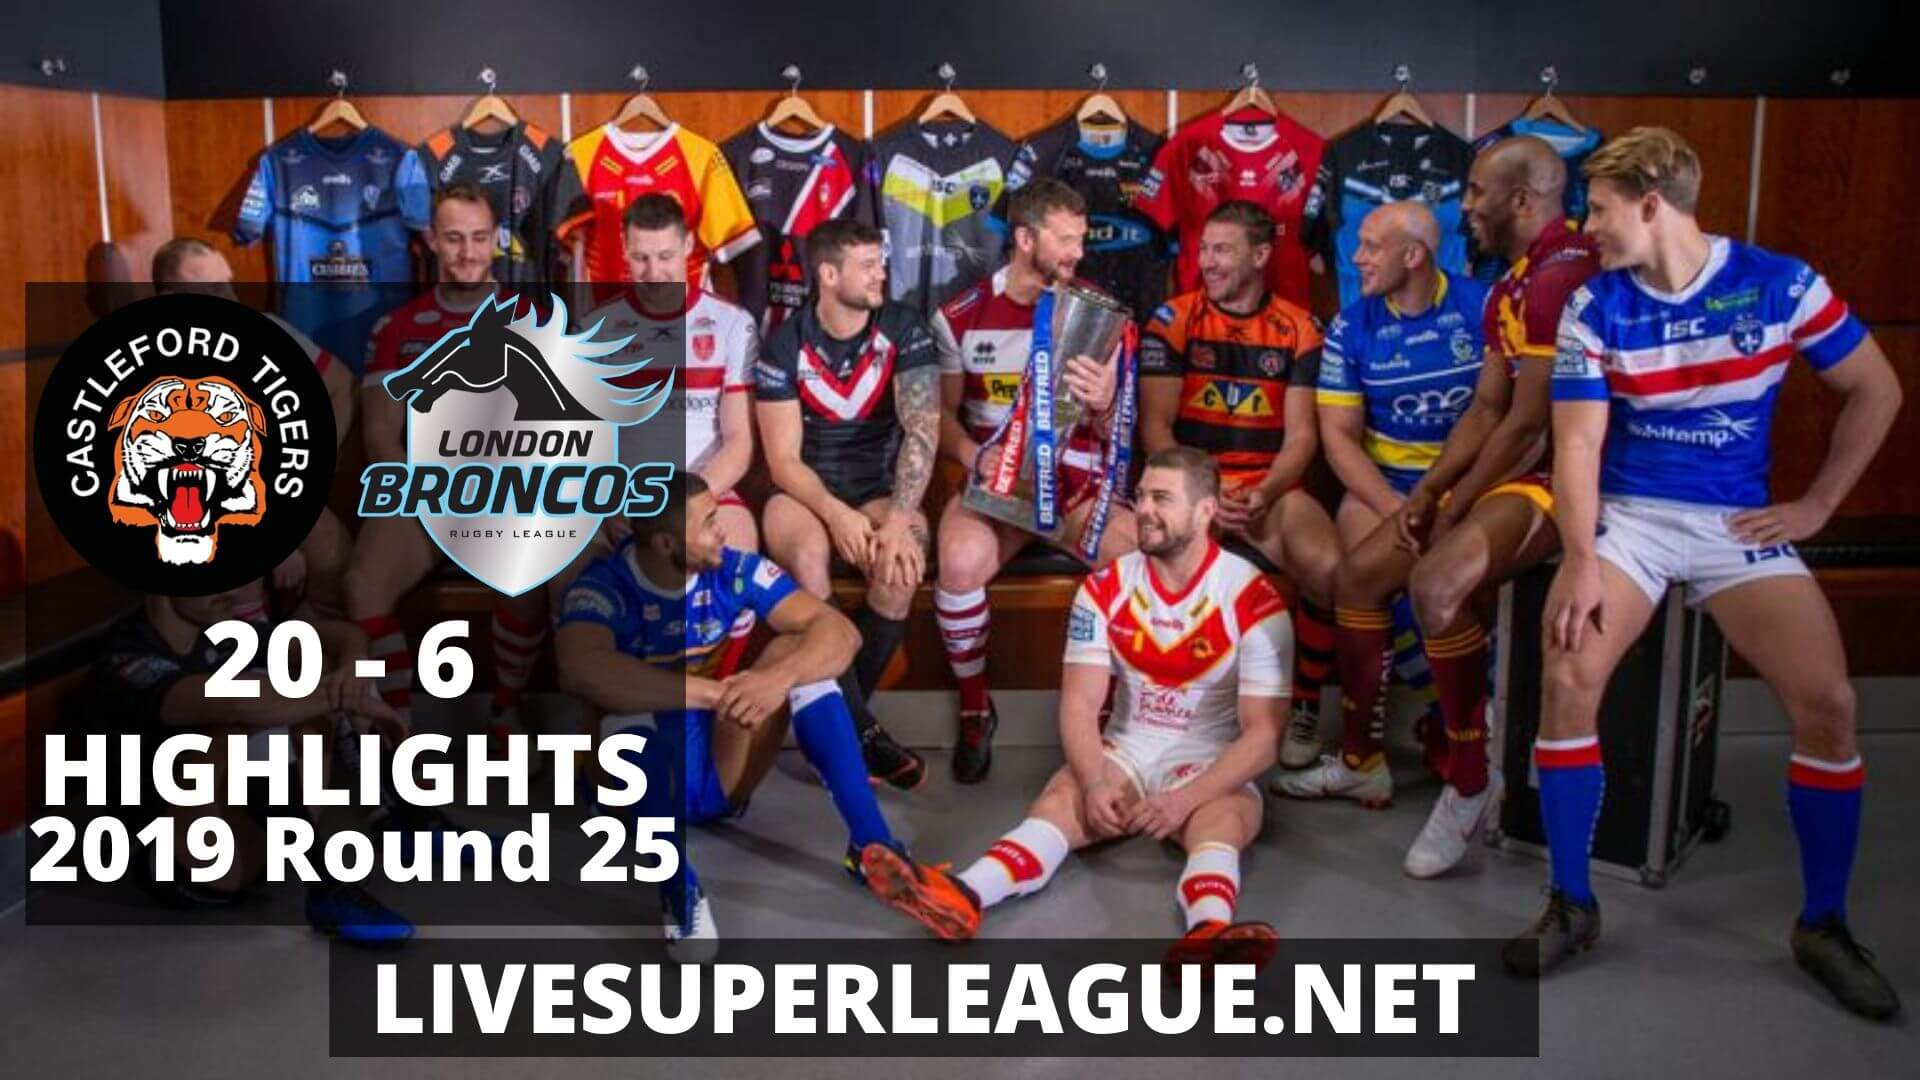 Castleford Tigers Vs London Broncos Highlights 2019 Round 25